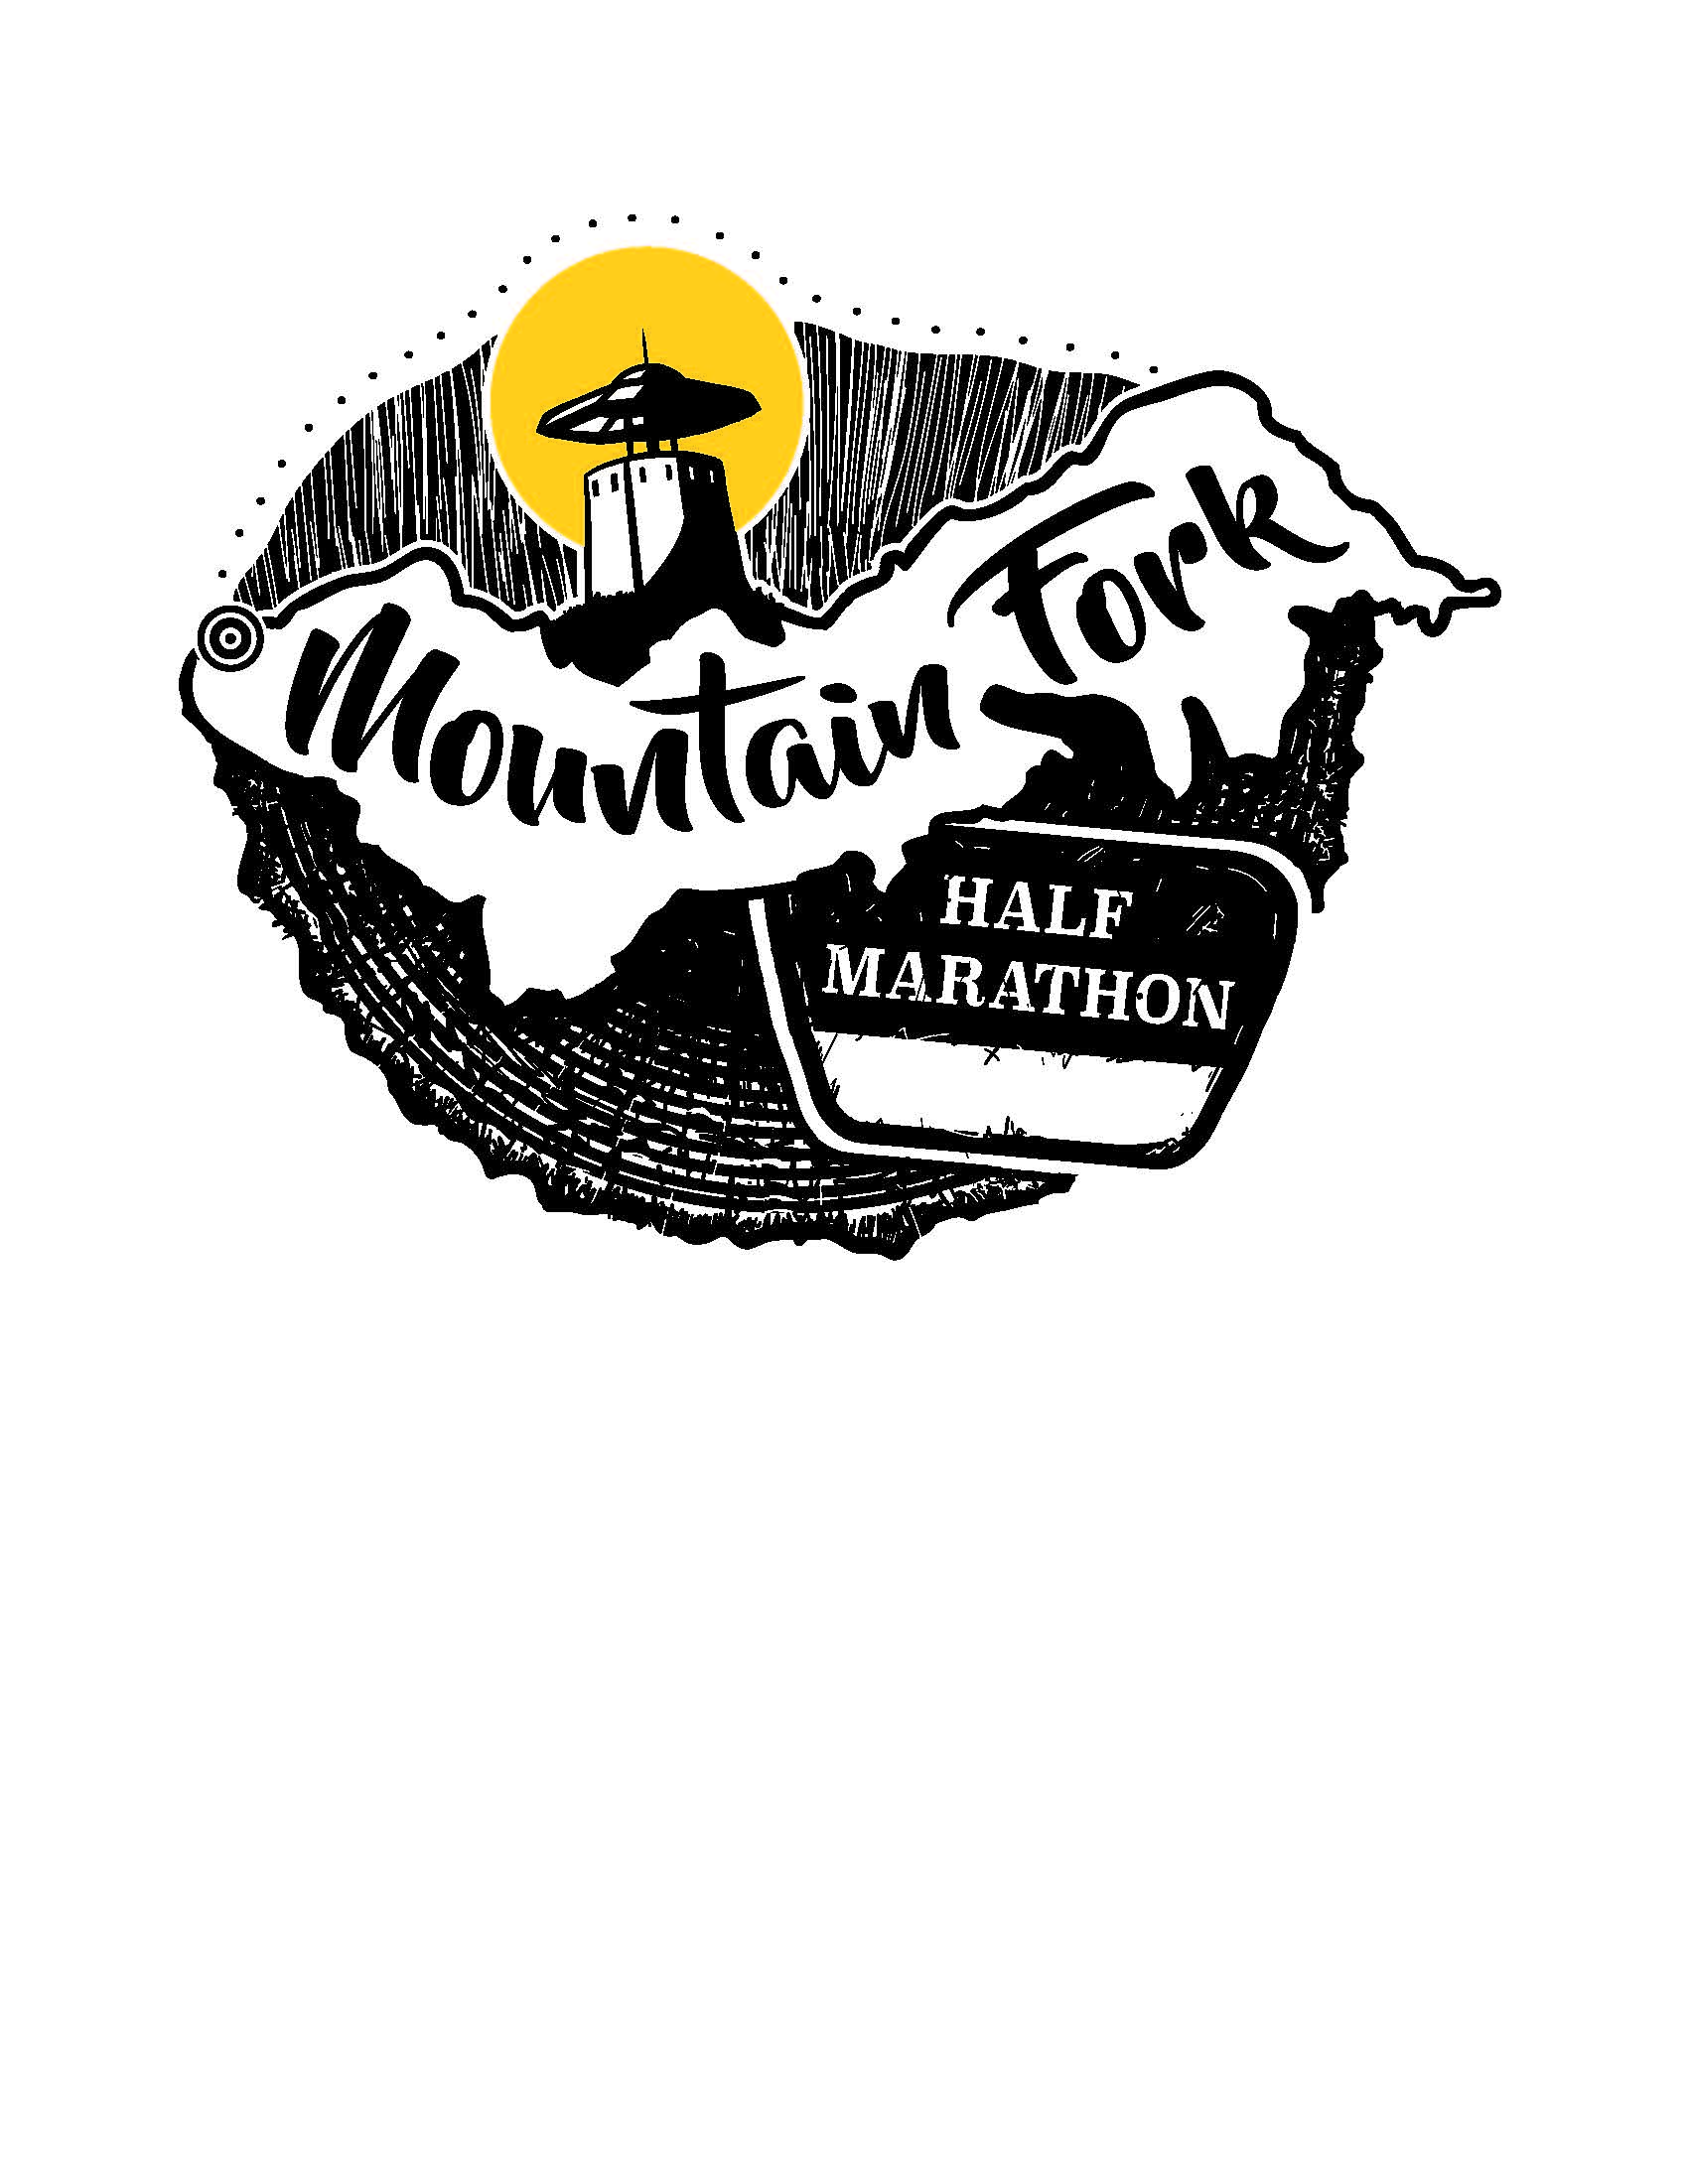 Photo of Mountain Fork Half Marathon logo